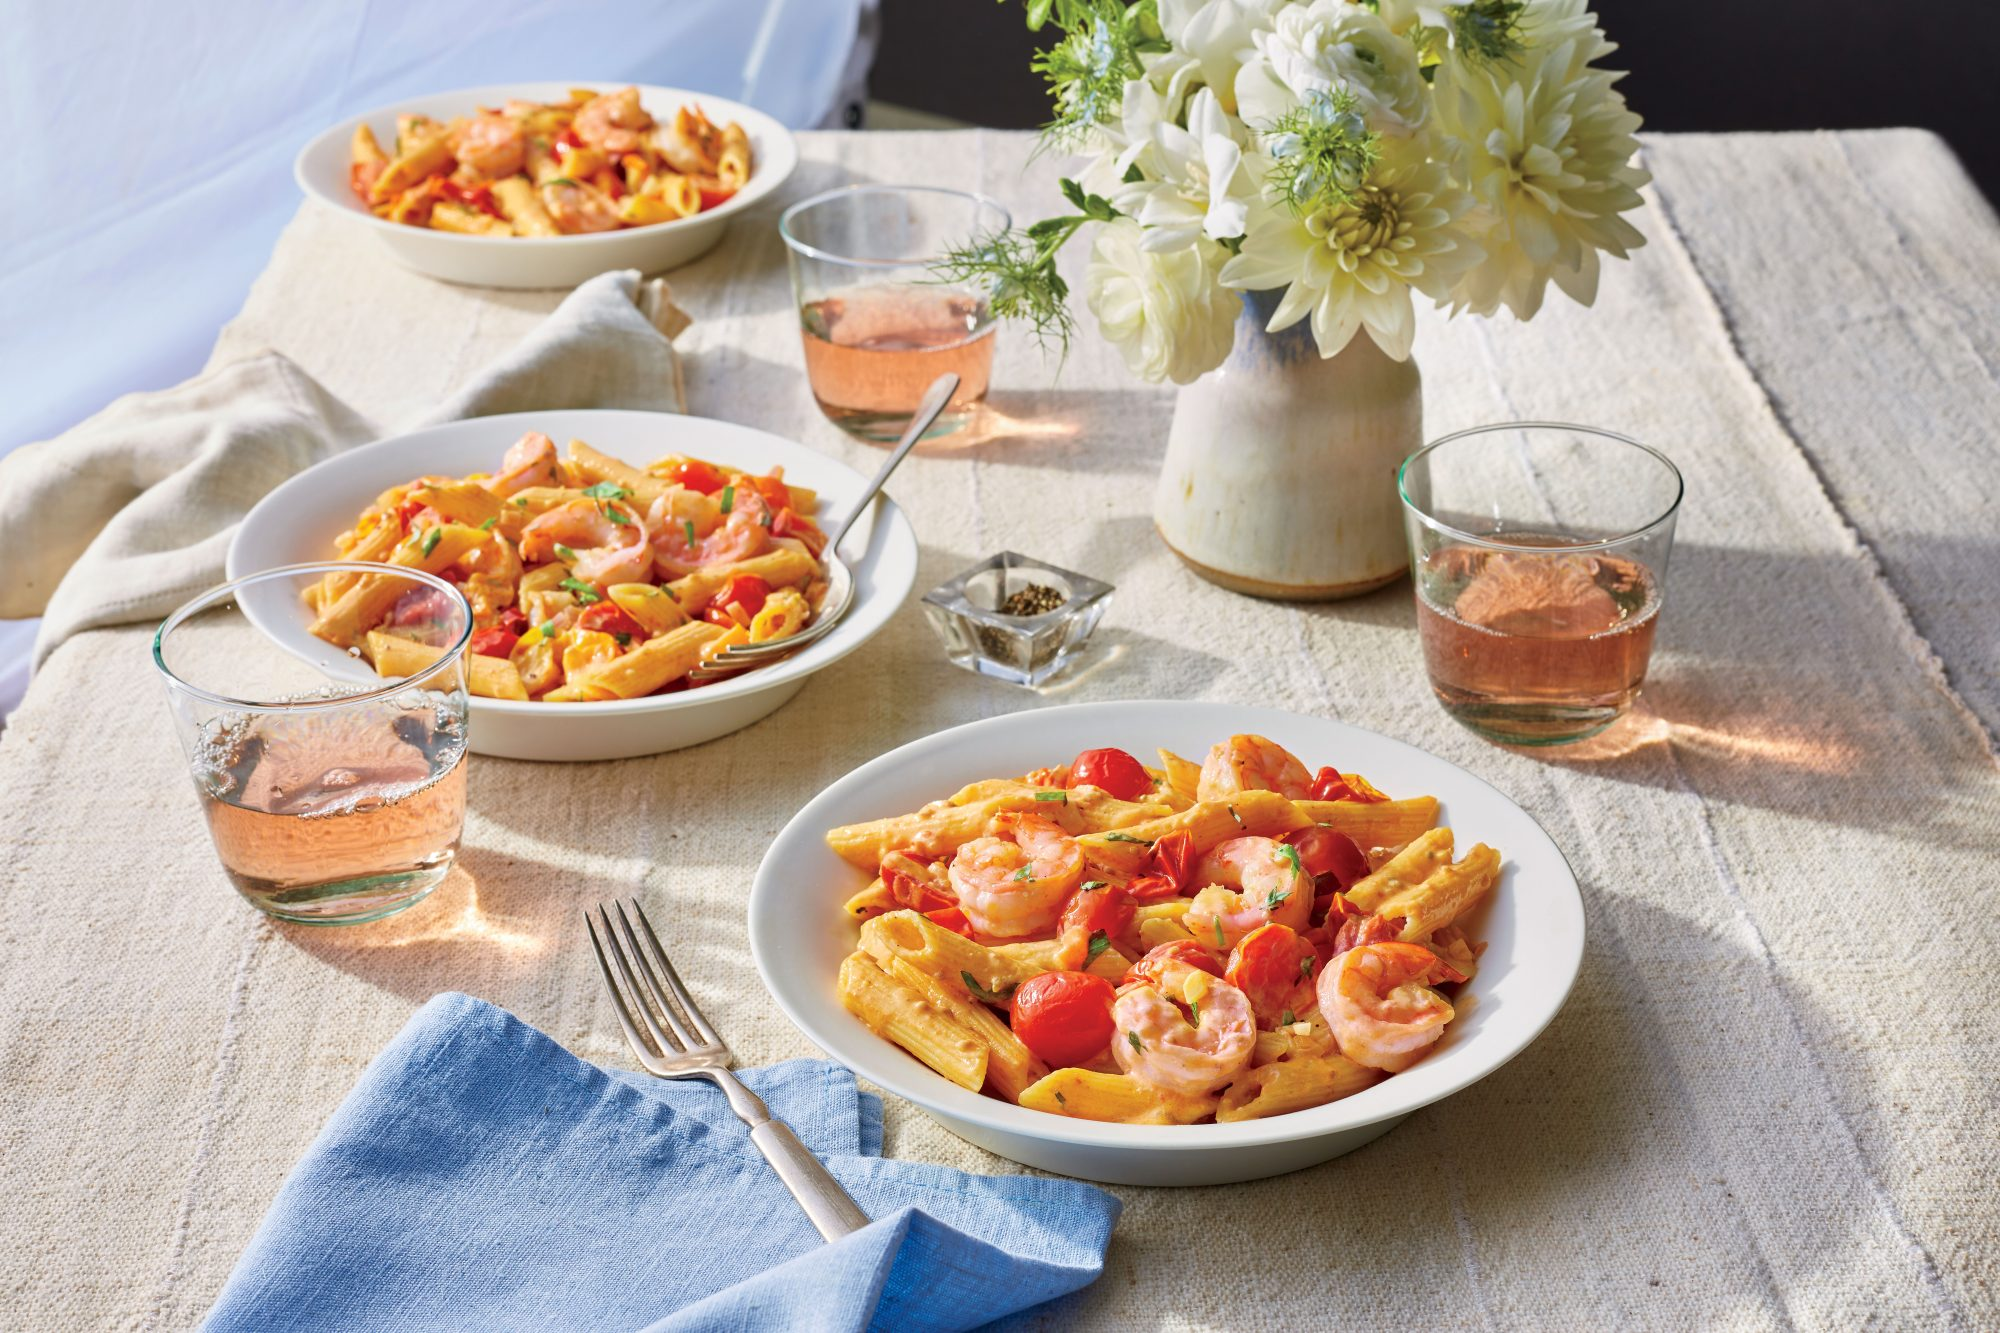 Pasta with Shrimp and Tomato Cream Sauce